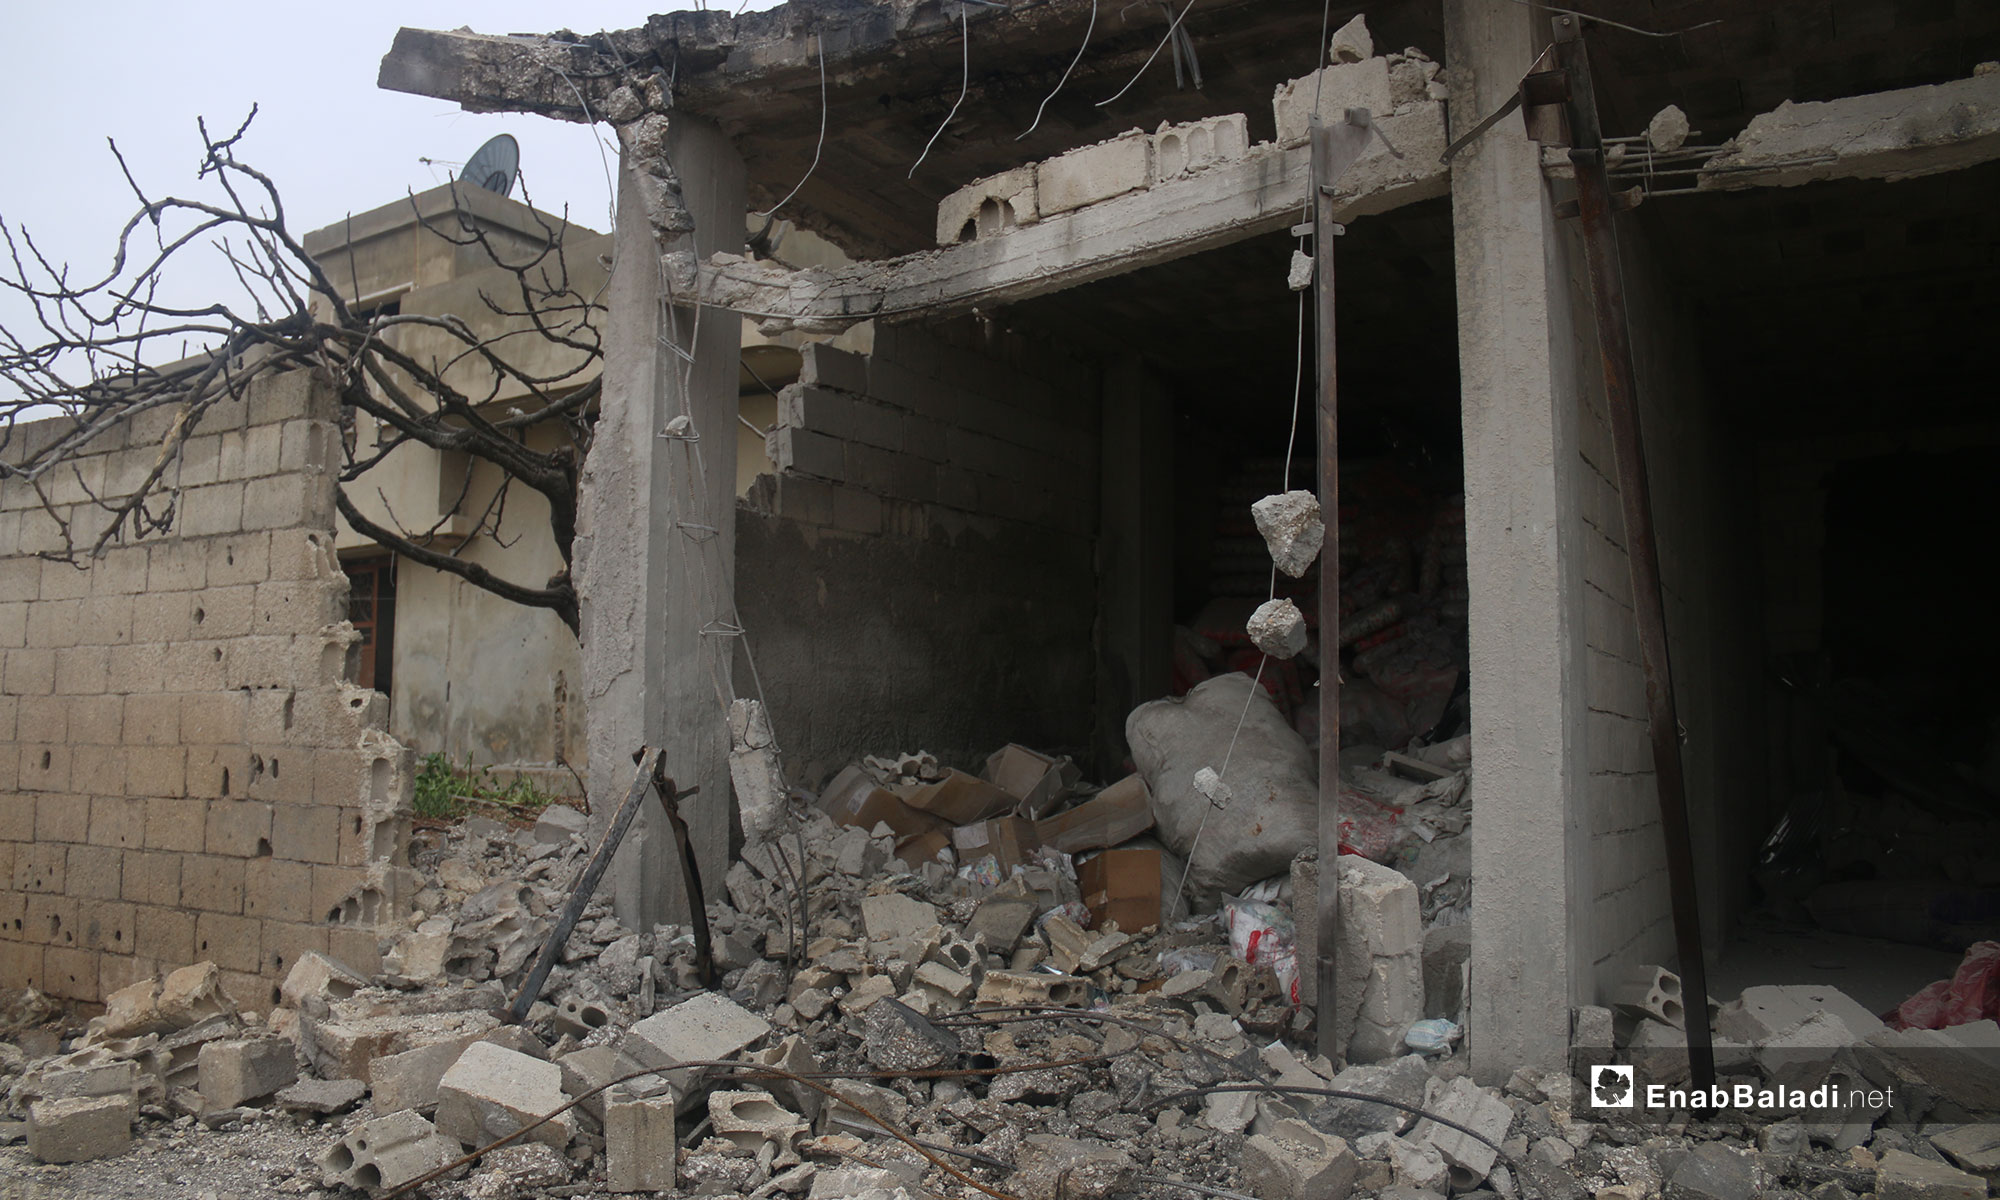 The destruction caused by the shelling of the town of Jarjnaz, southern Idilb – February 7, 2019 (Enab Baladi)